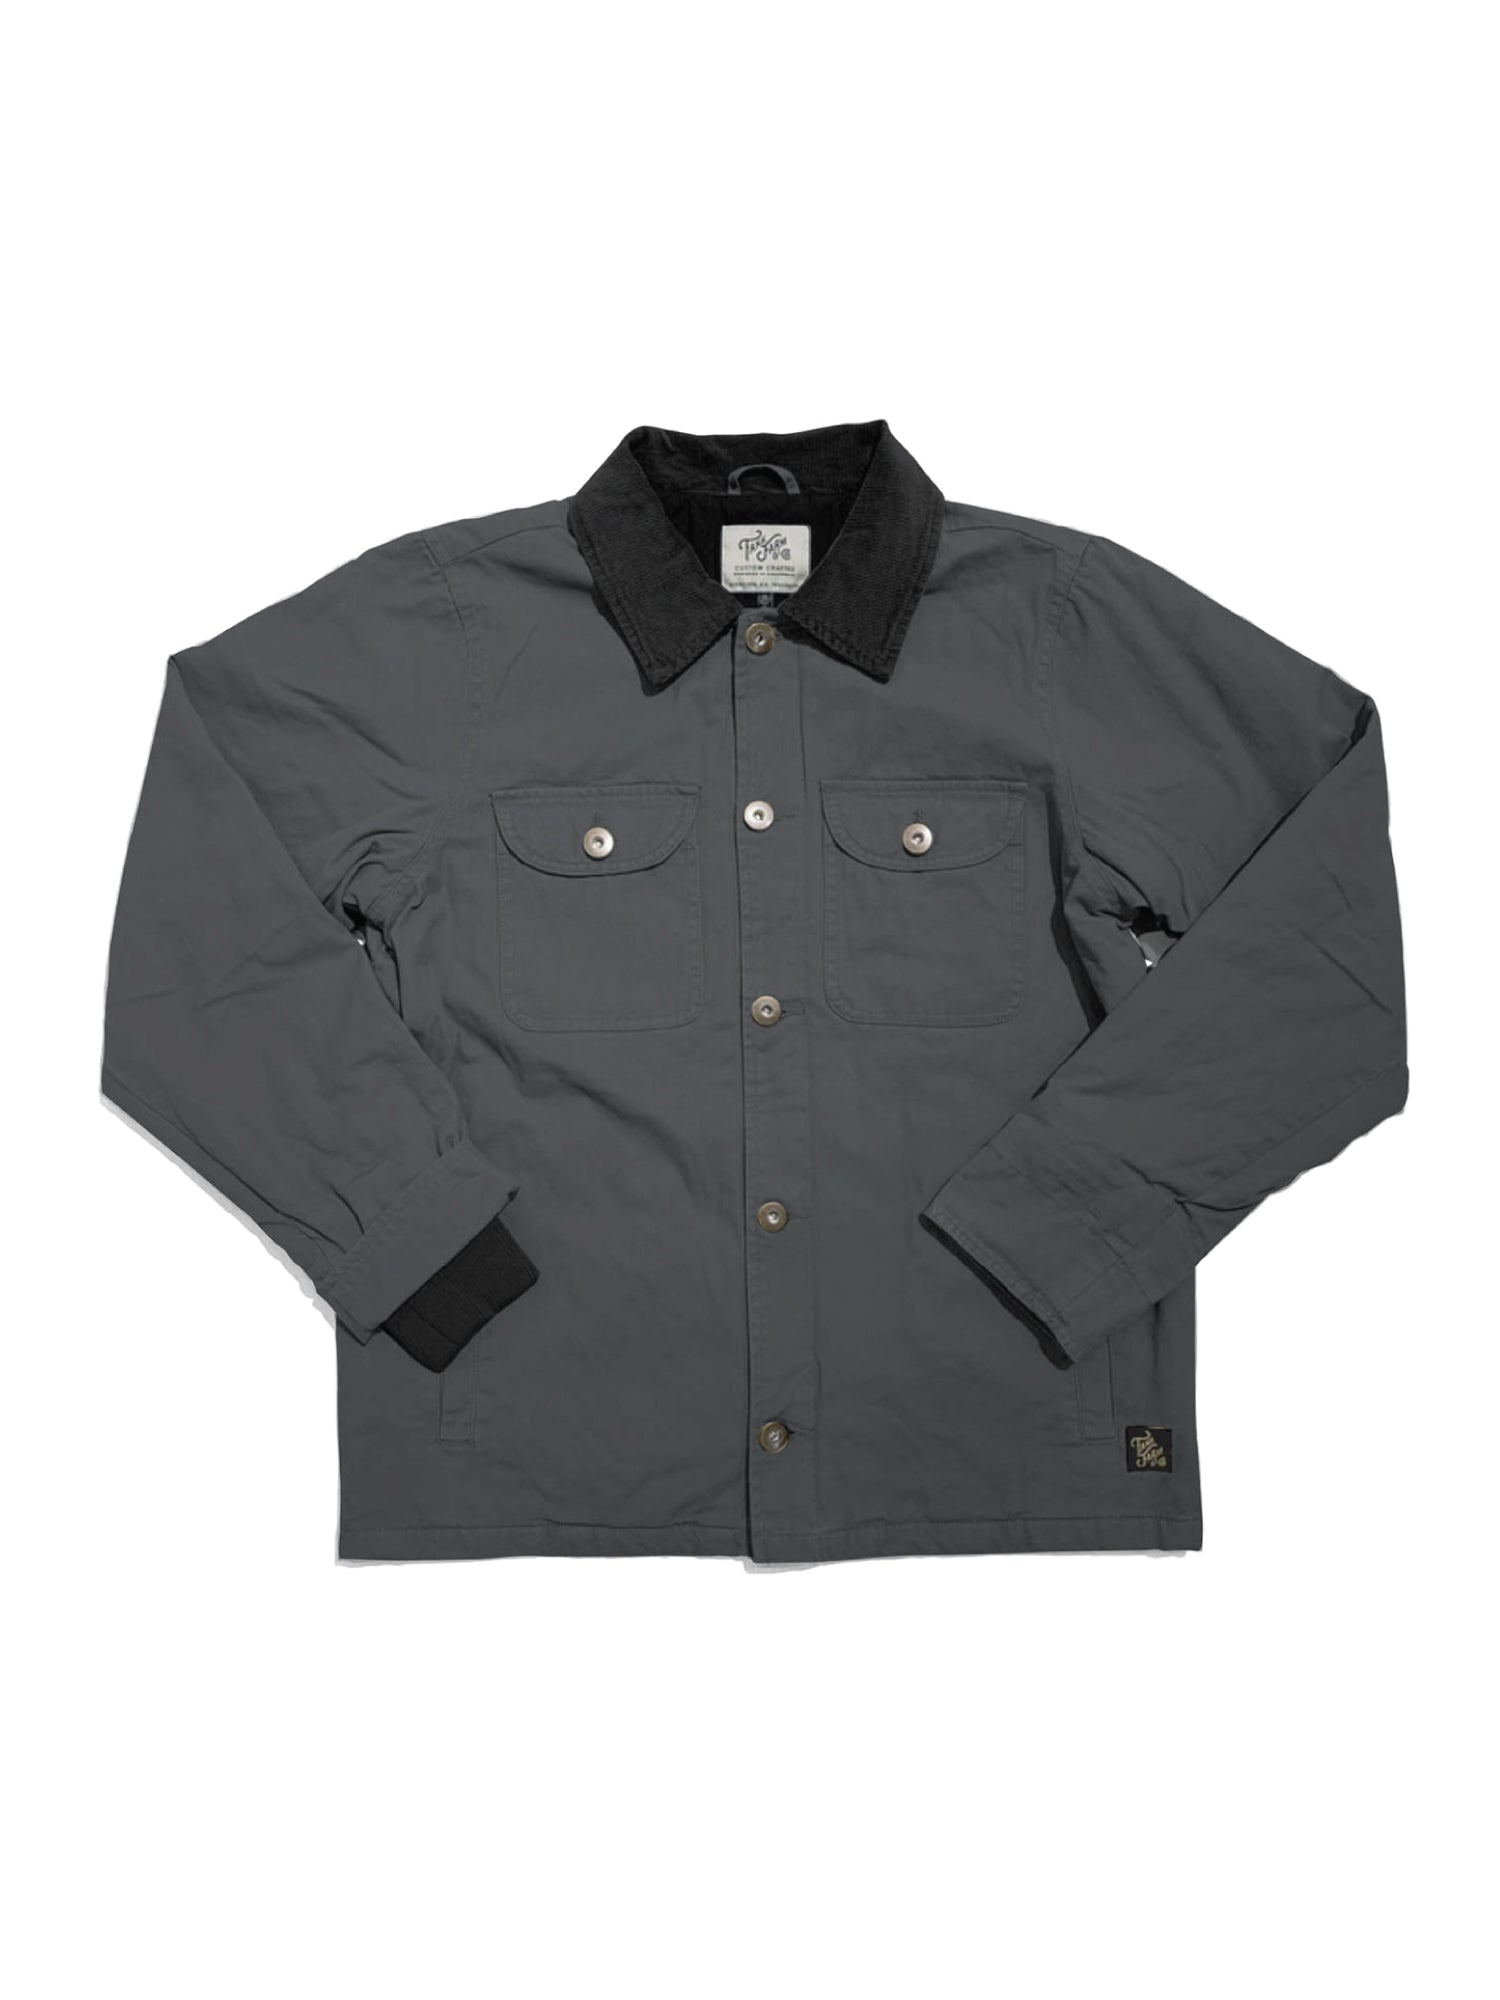 RICHARD JACKET - CHARCOAL - Tankfarm & Co.